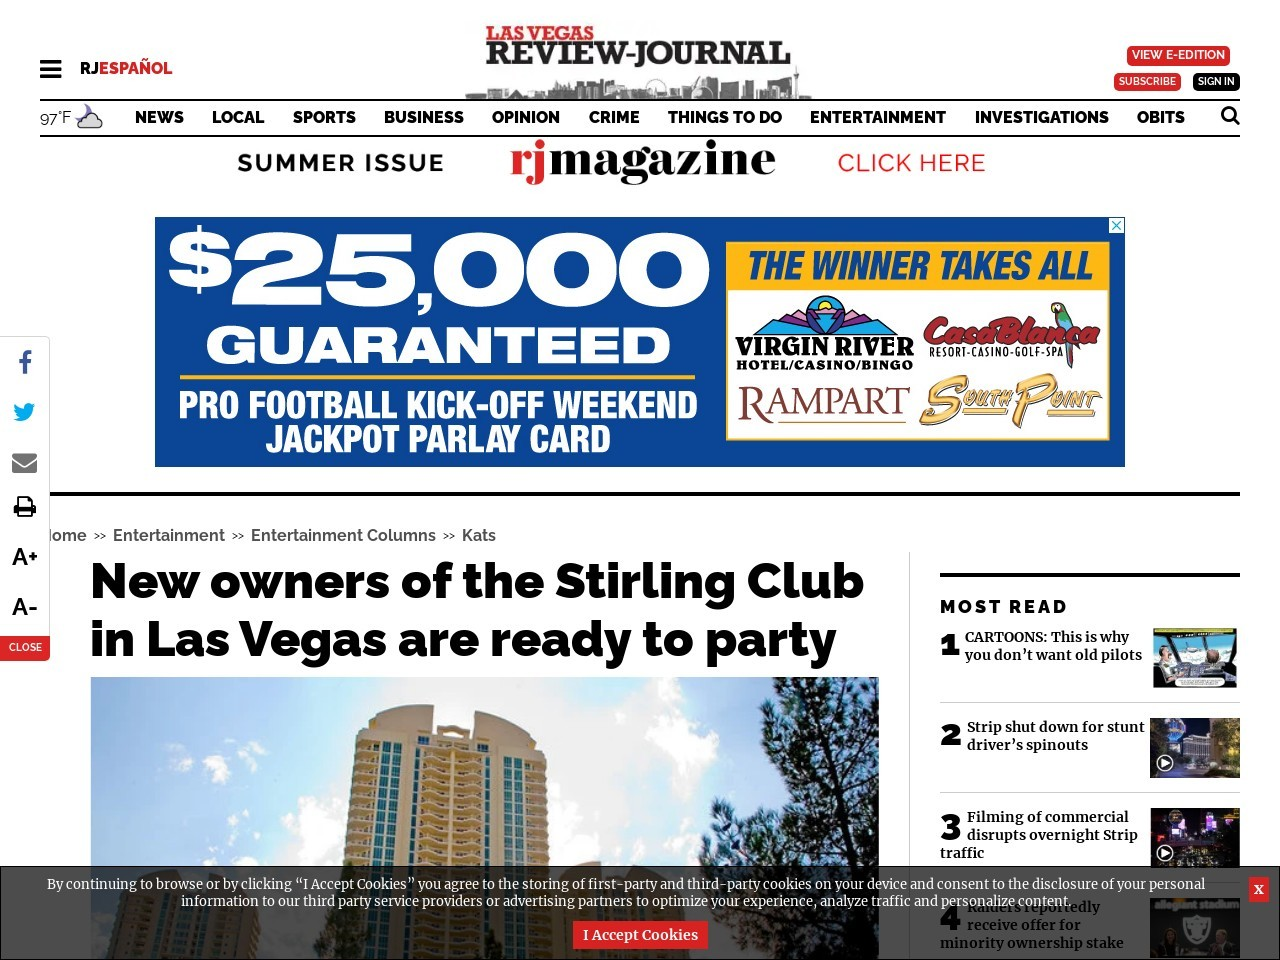 New owners of the Stirling Club in Las Vegas are ready to party